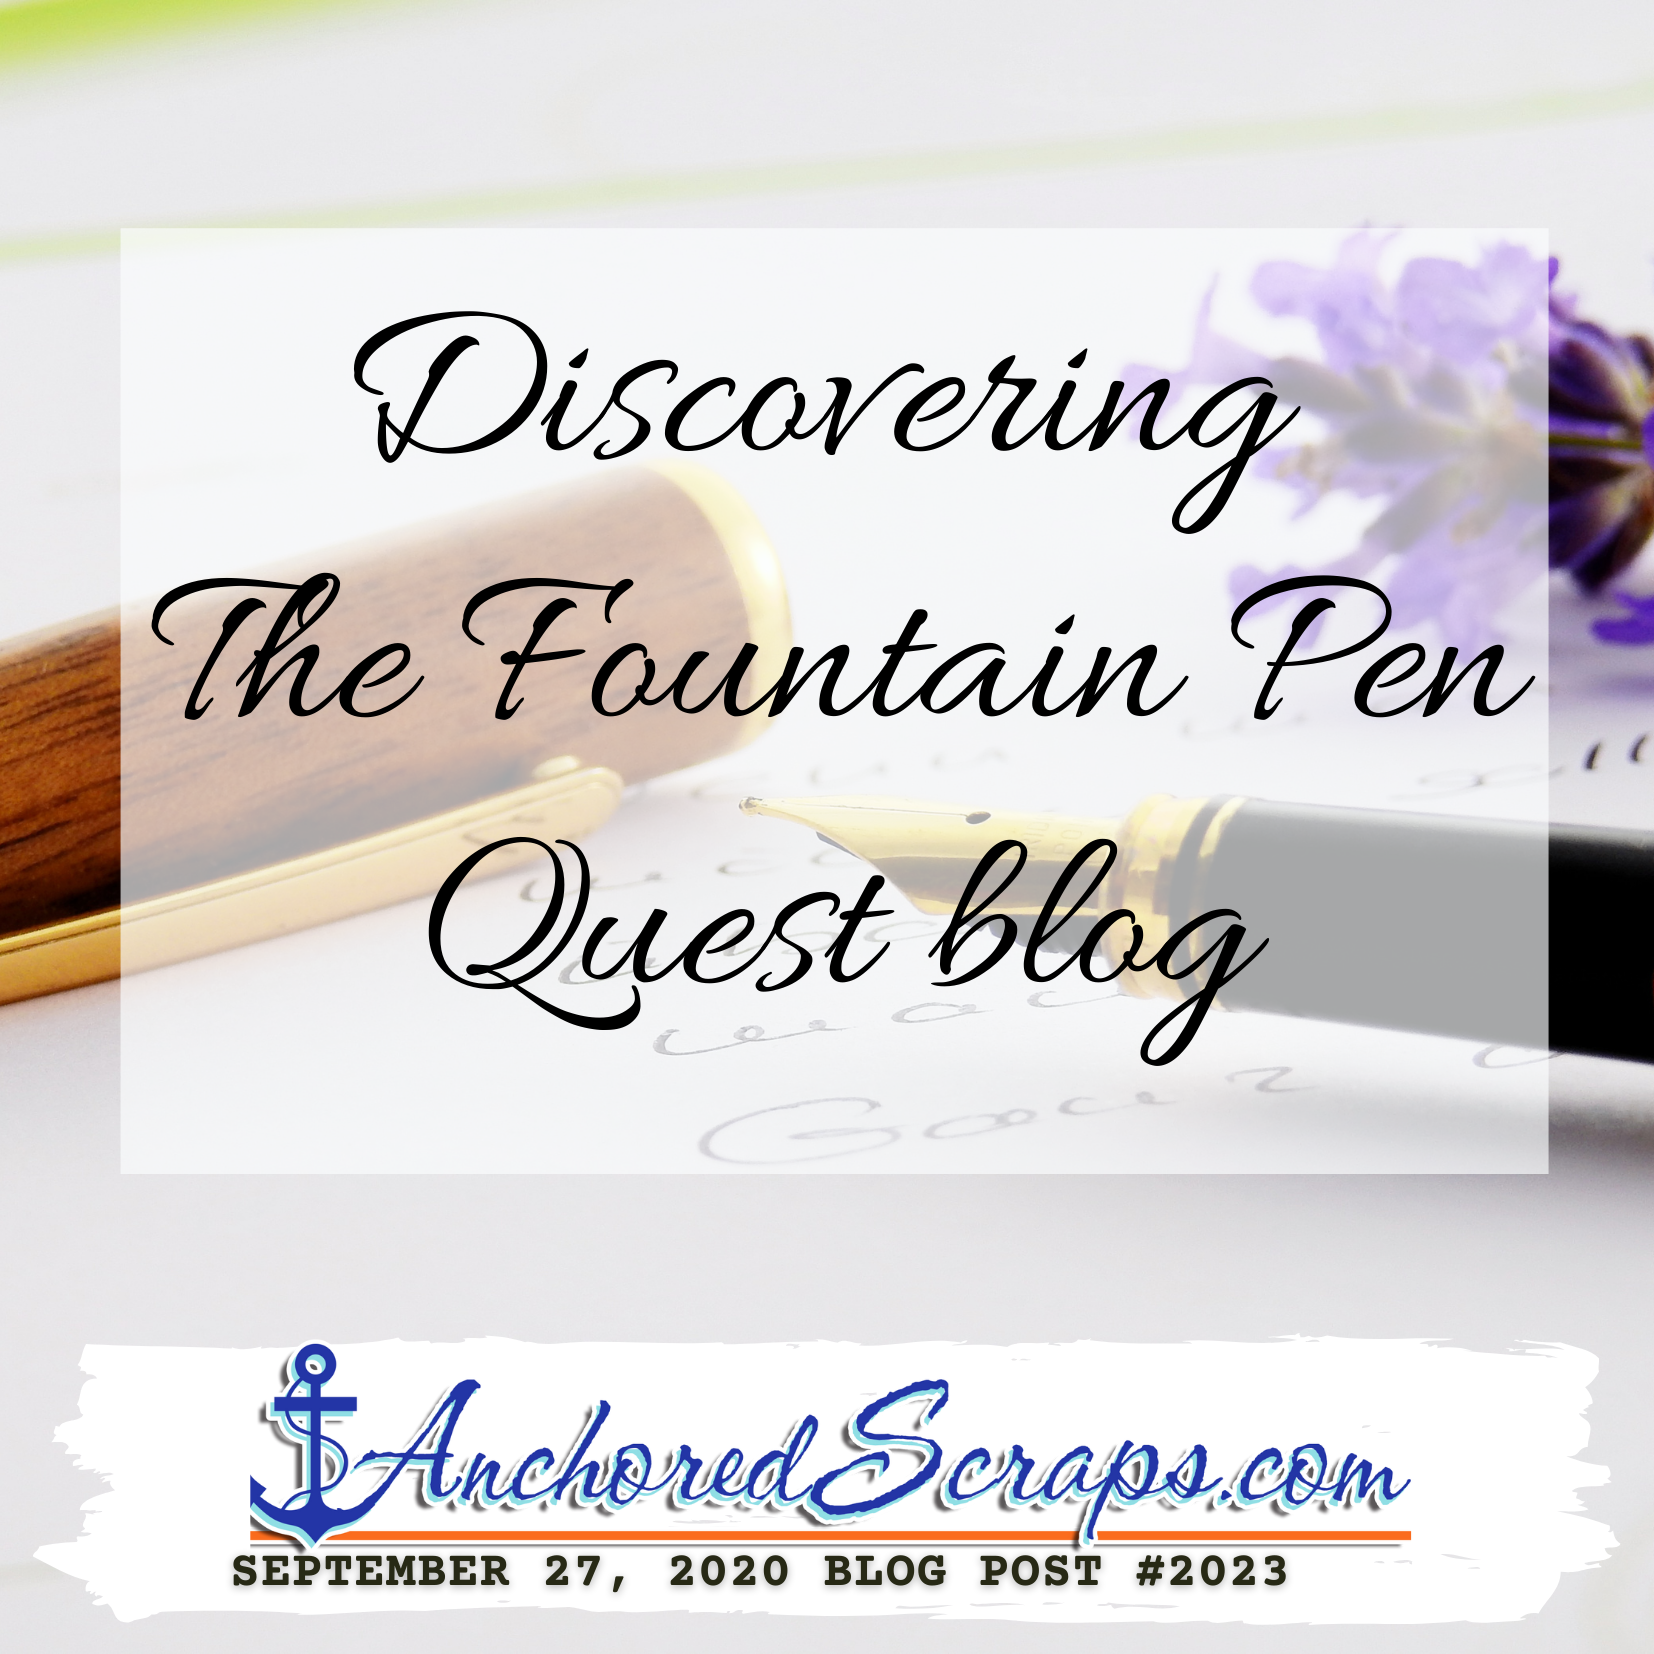 The Fountain Pen Quest Blog #2023